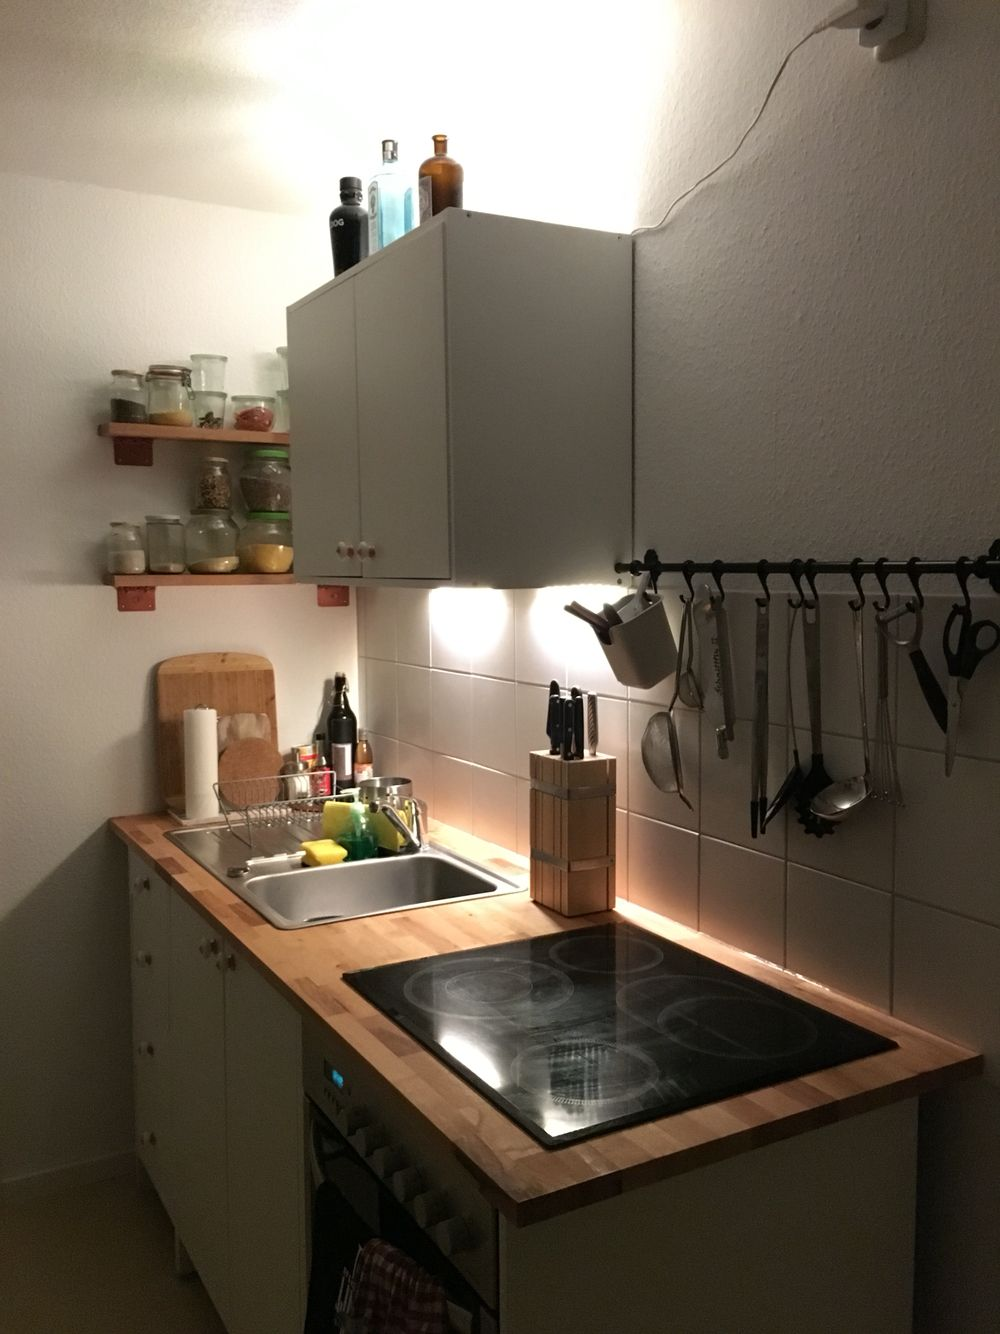 IKEA Fyndig DIY Selfmade Kitchen | Self-Made Möbel | Pinterest ...